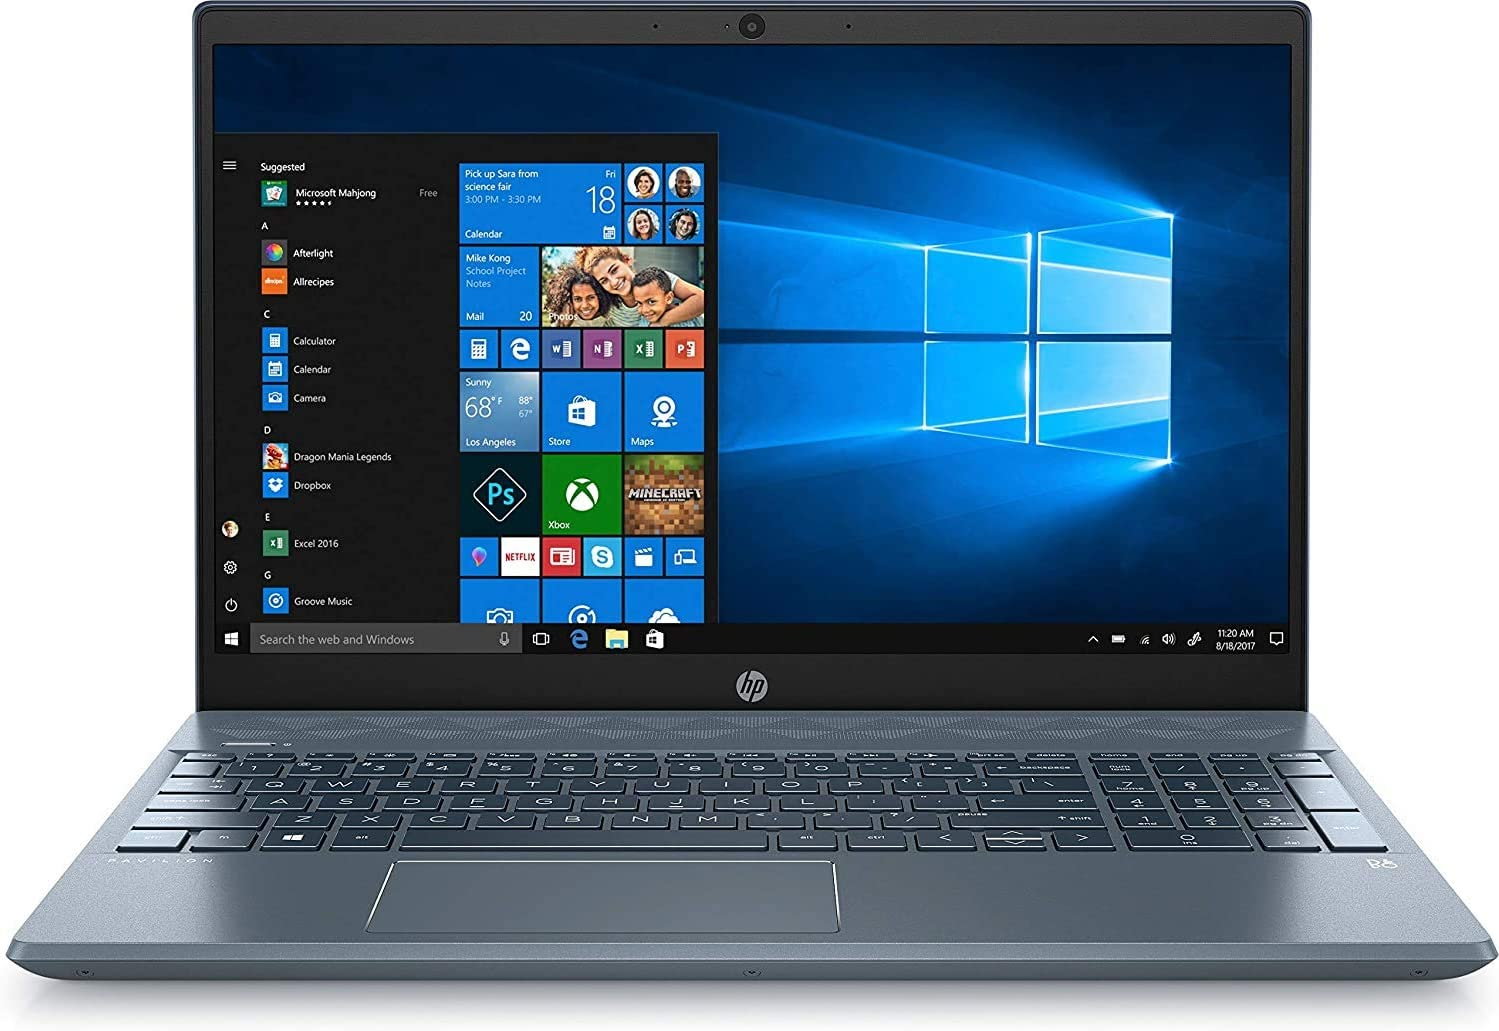 "HP 15-cw1063wm Pavilion 15.6"" FHD Ryzen 5 3500U 2.1GHz 8GB RAM 1TB HDD 128GB SSD Win 10 Horizon Blue (Renewed)"